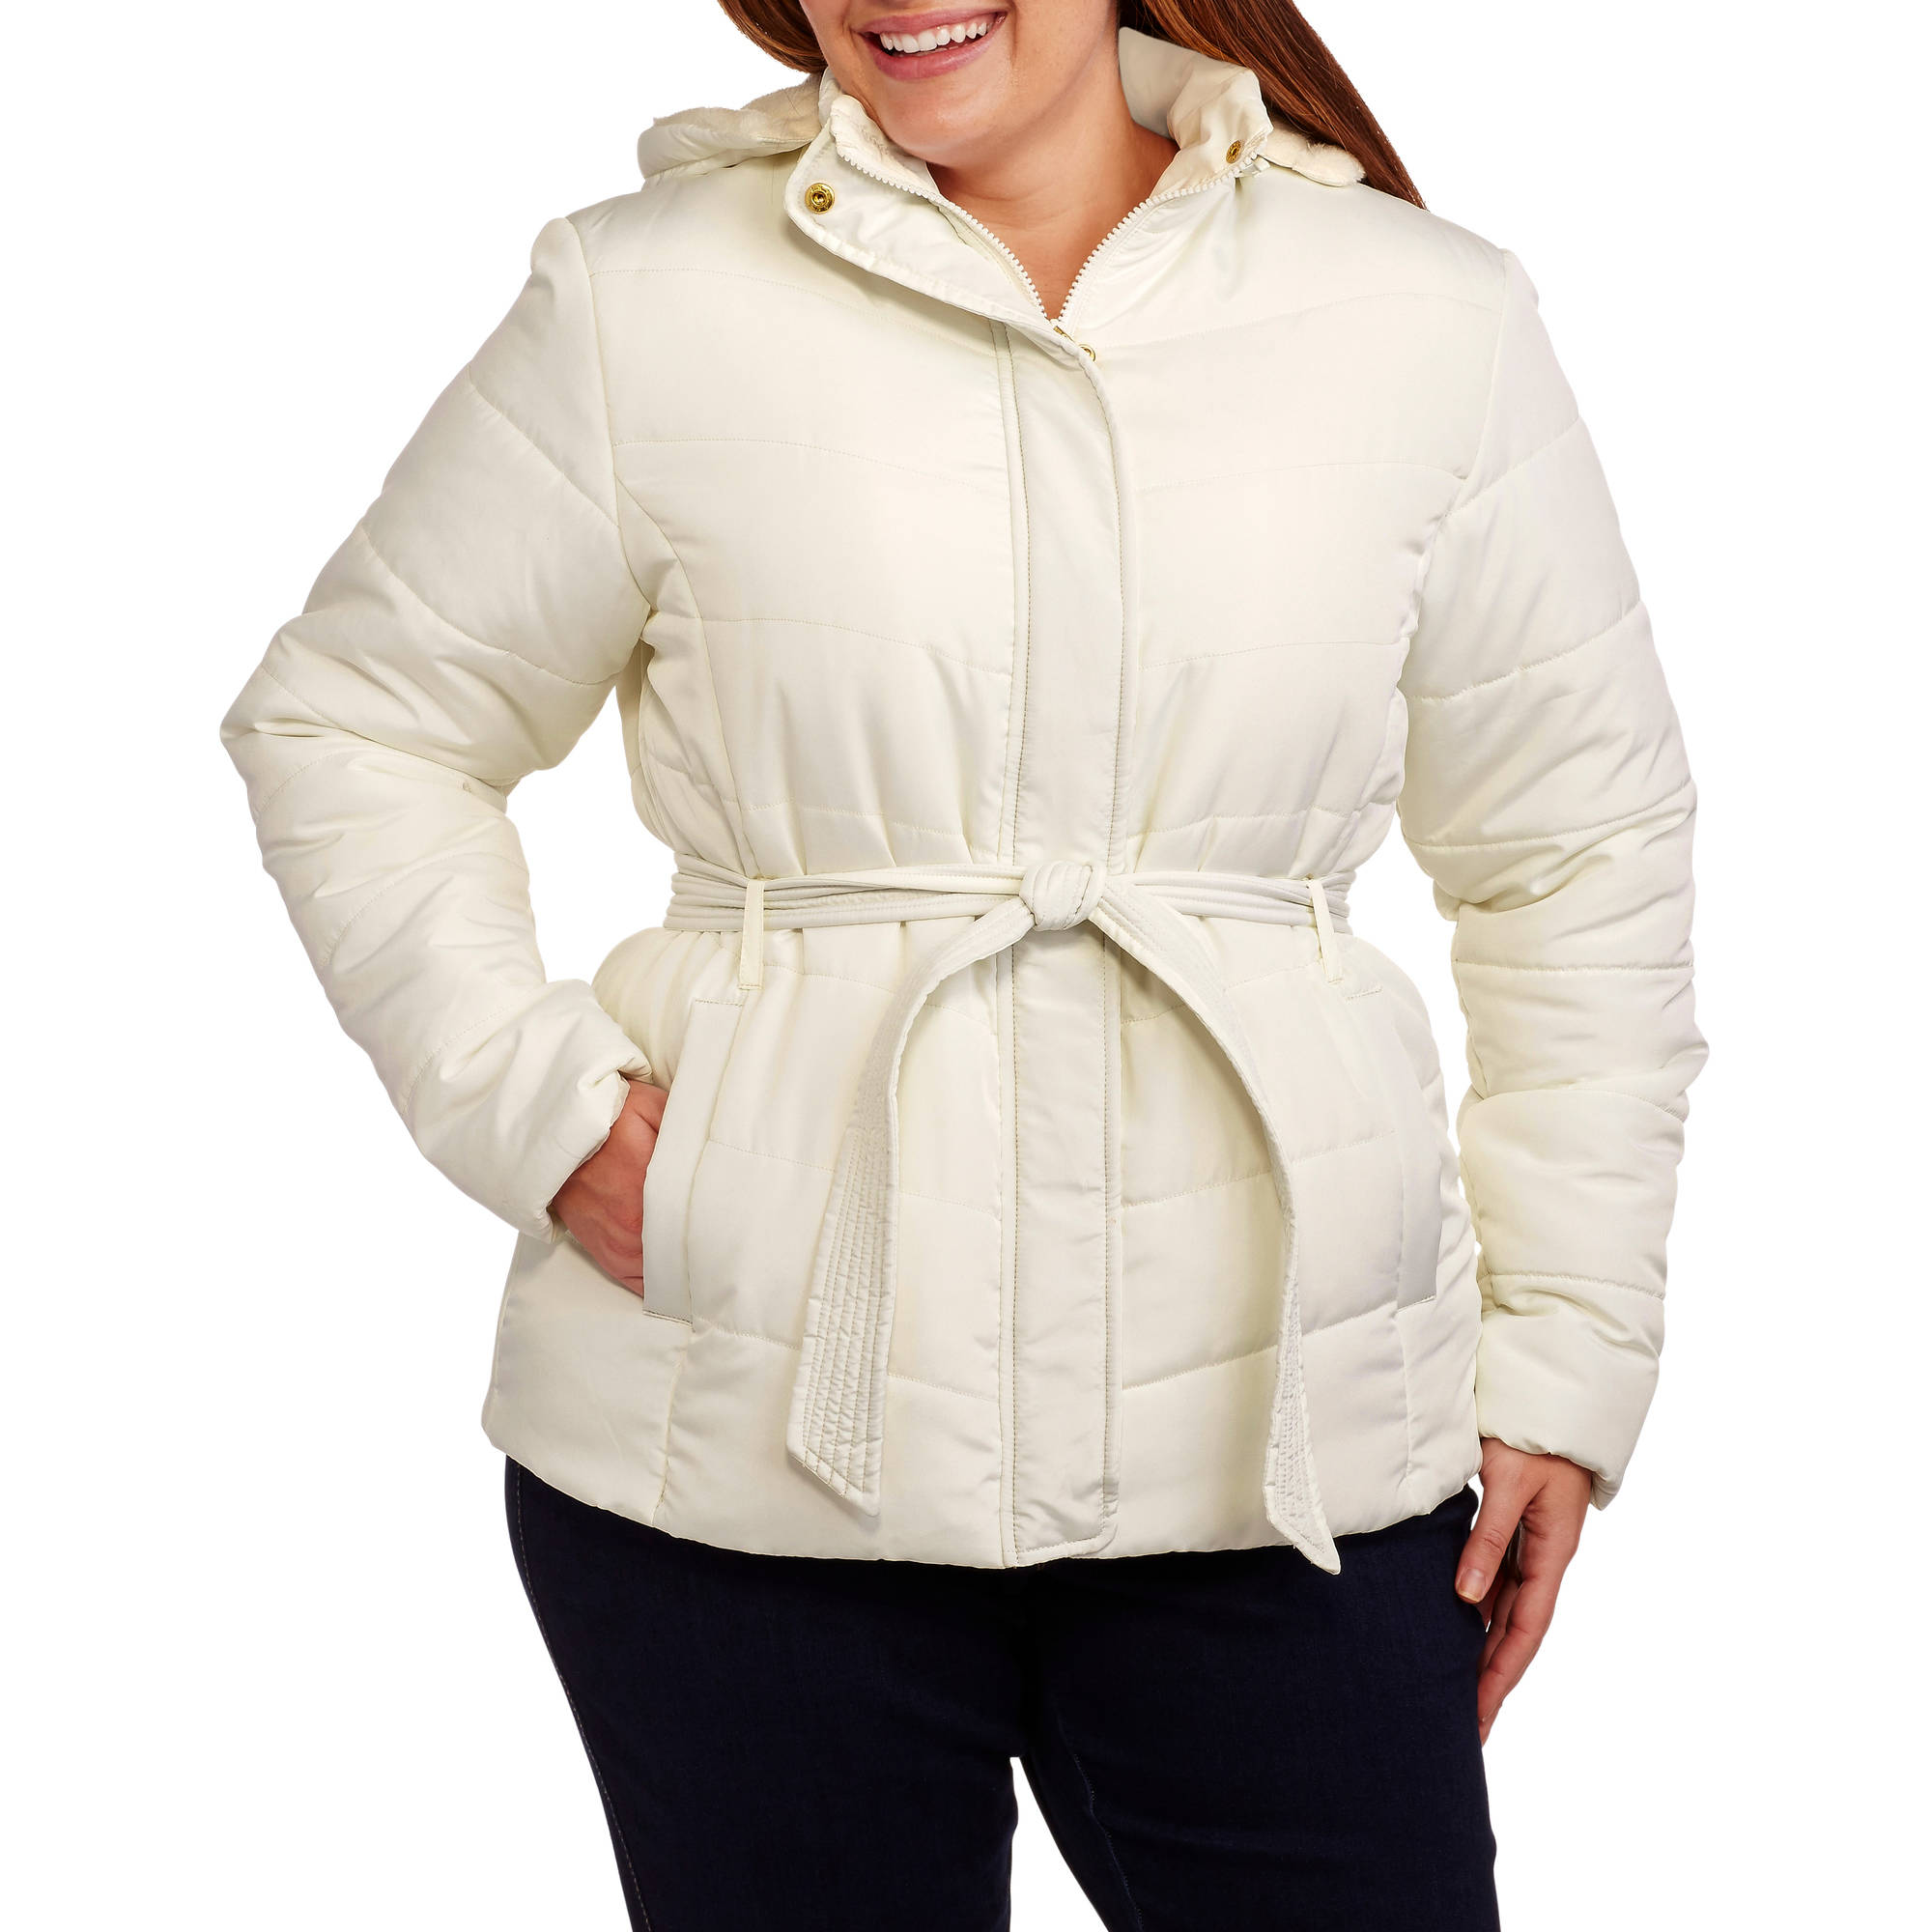 Climate Concepts Women's Plus-Size Belted Hooded Puffer Coat with Faux Fur Trim